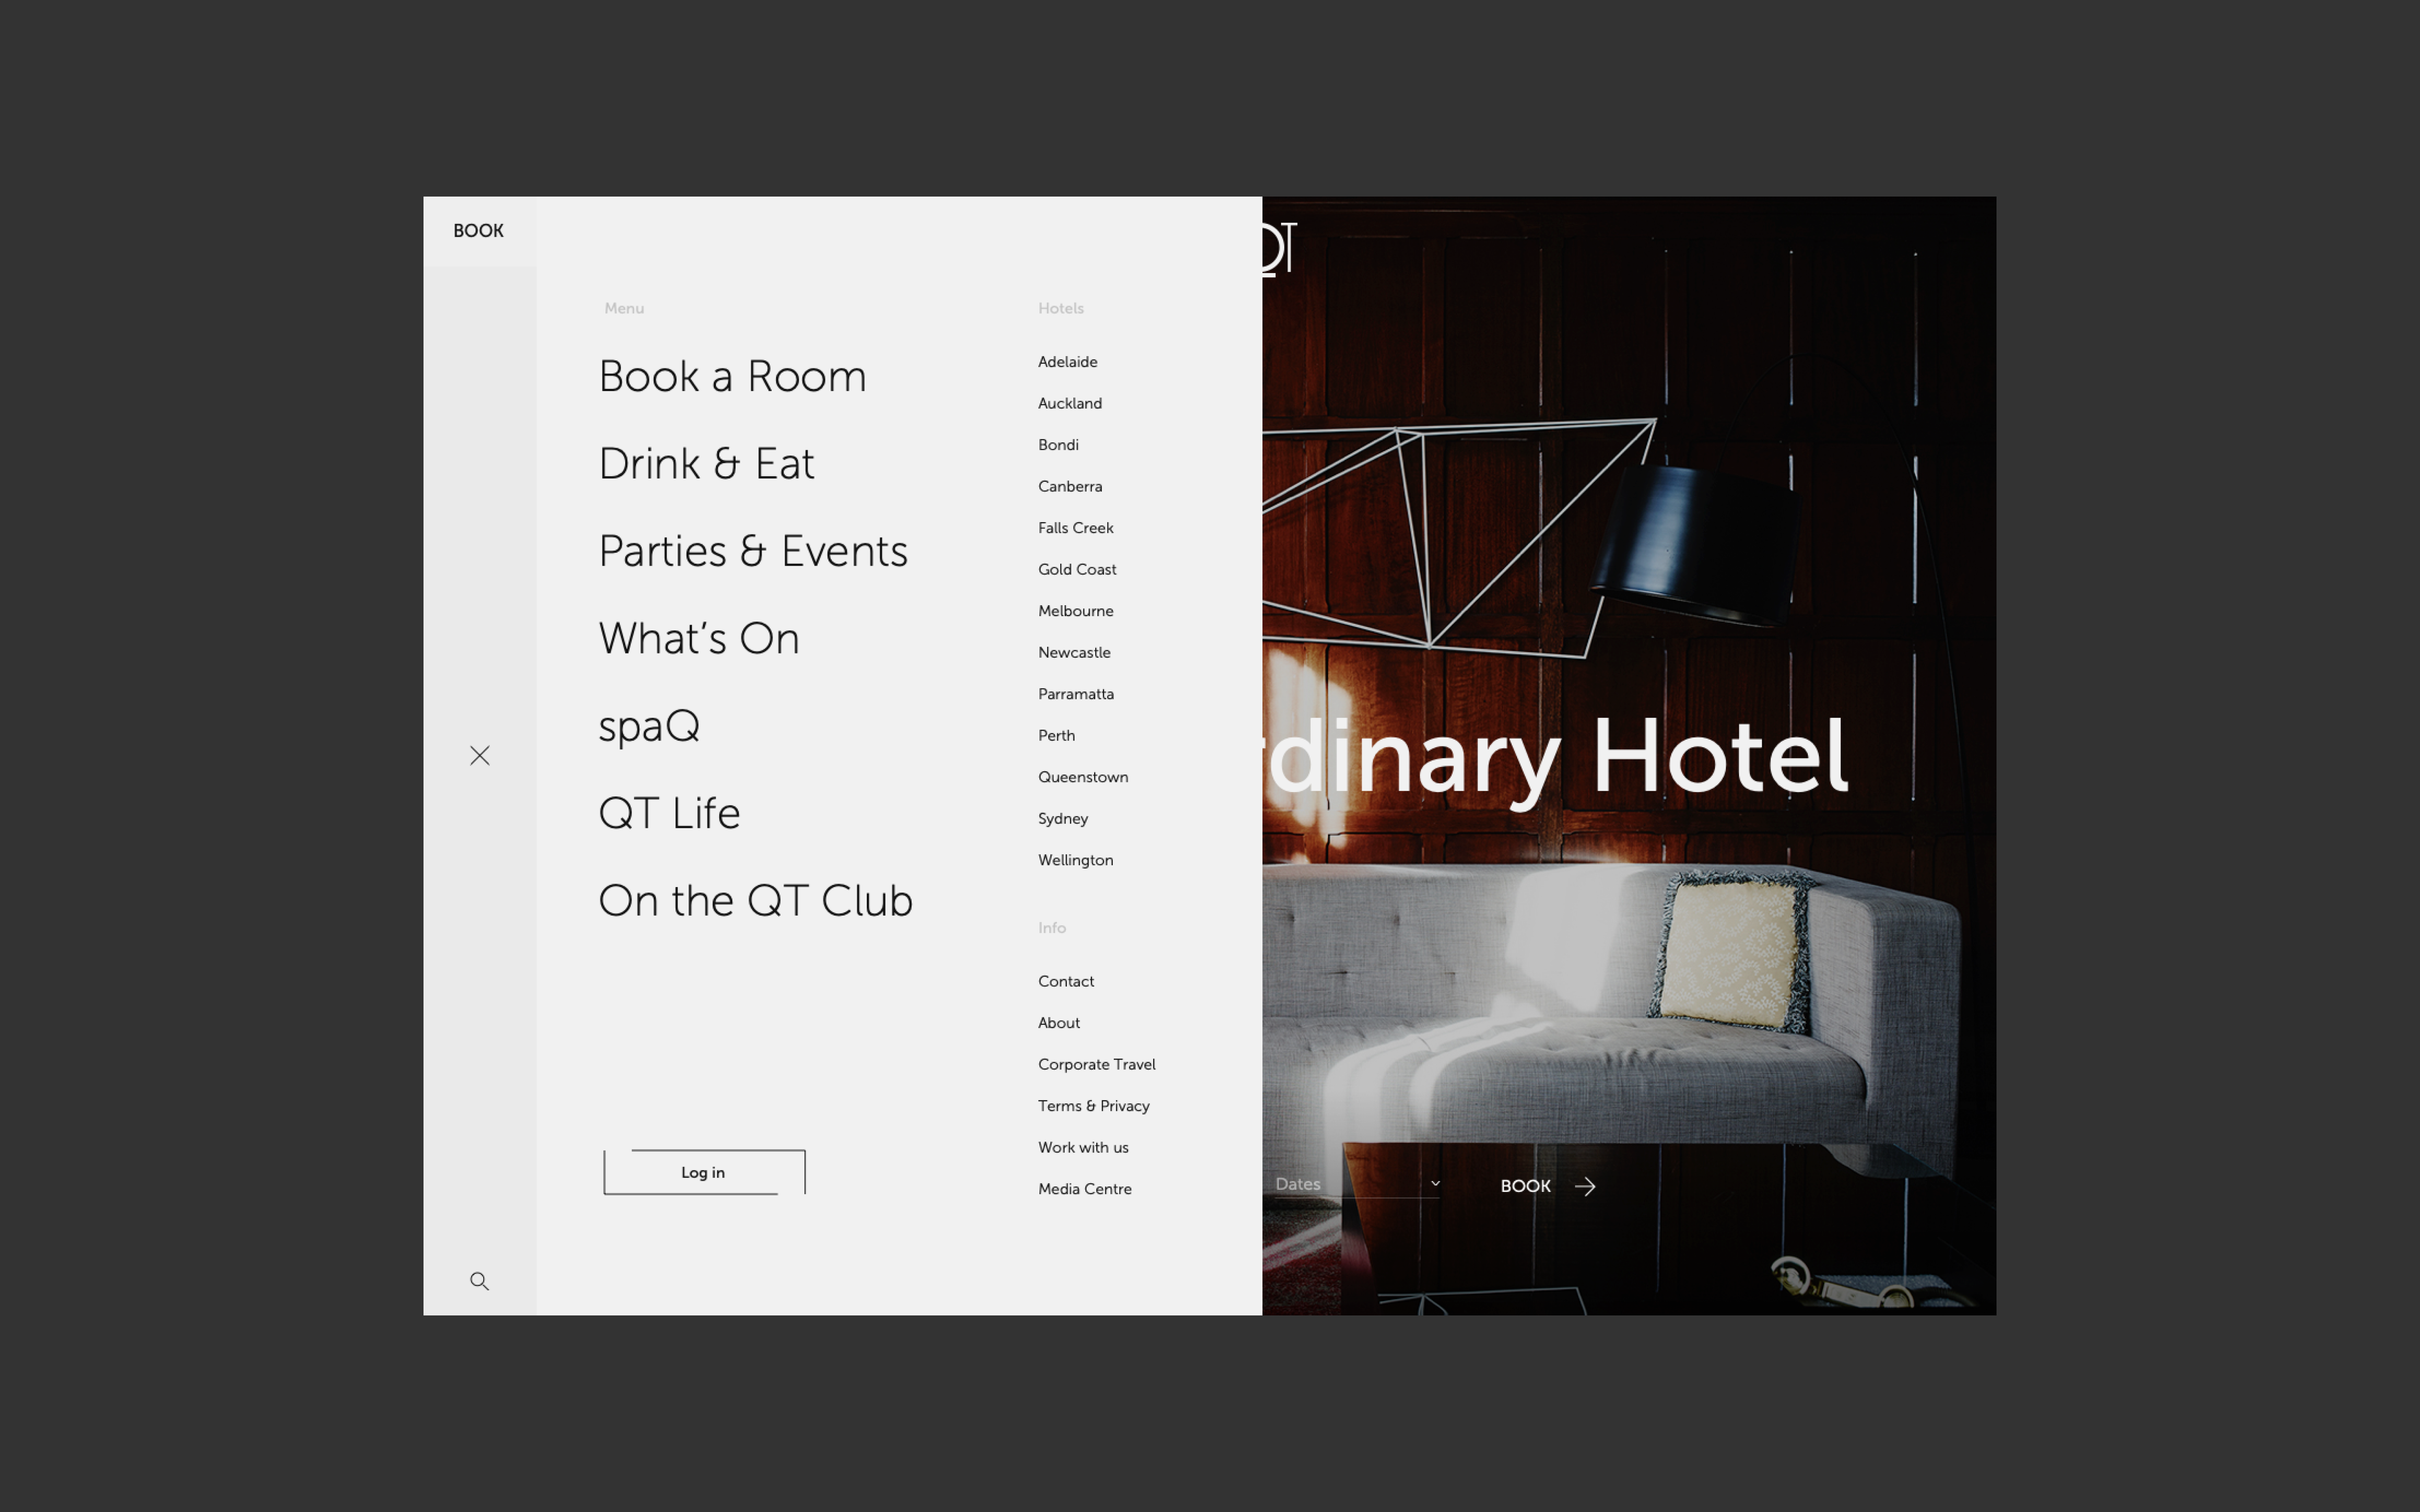 New QT website slide out menu, which features a clean layout with clear CTA's